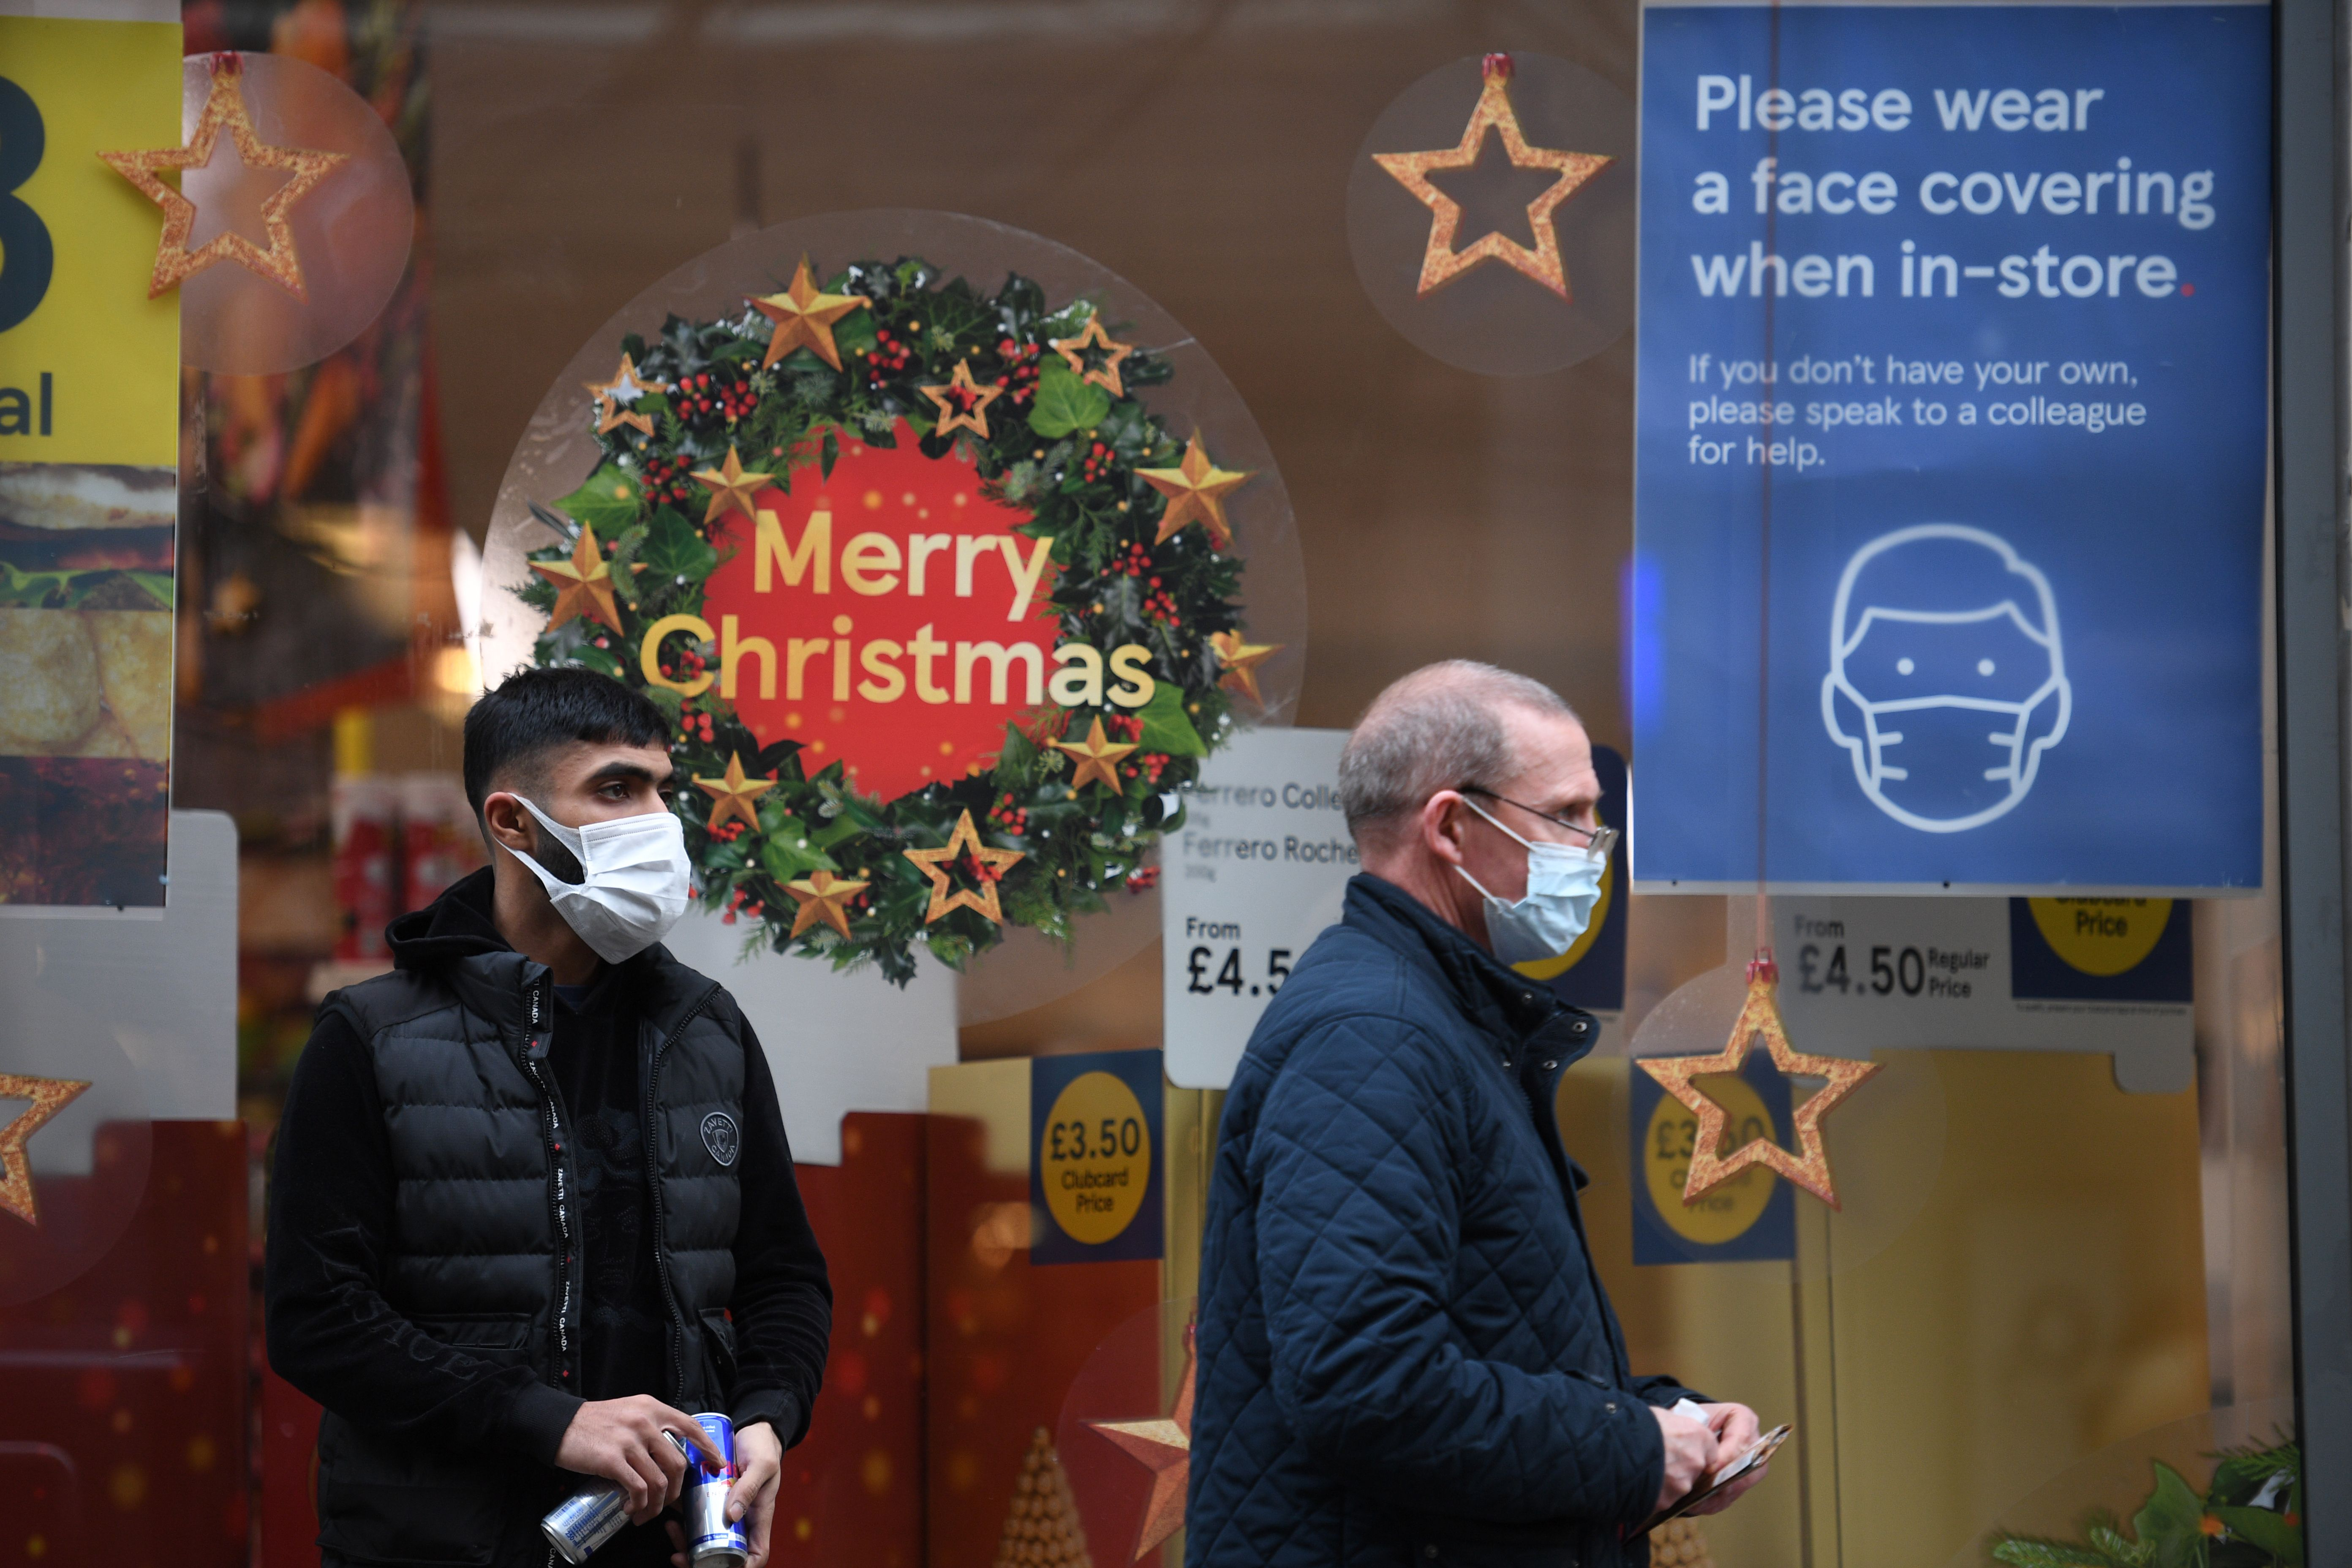 Pedestrians wearing masks because of the novel coronavirus pandemic walk past the window of a closed shop displaying Christmas decoration in the centre of Manchester, northwest England, on November 26, 2020. - London will escape the tightest restrictions once England's national coronavirus lockdown ends next week, the government said Thursday, but major cities including Manchester and Birmingham face at least two more weeks of tough rules. England will return to a regional tiered system when the national regulations end on December 2, with those areas suffering the worst case rates entering the highest Tier 3. (Photo by Oli SCARFF / AFP) (Photo by OLI SCARFF/AFP via Getty Images)